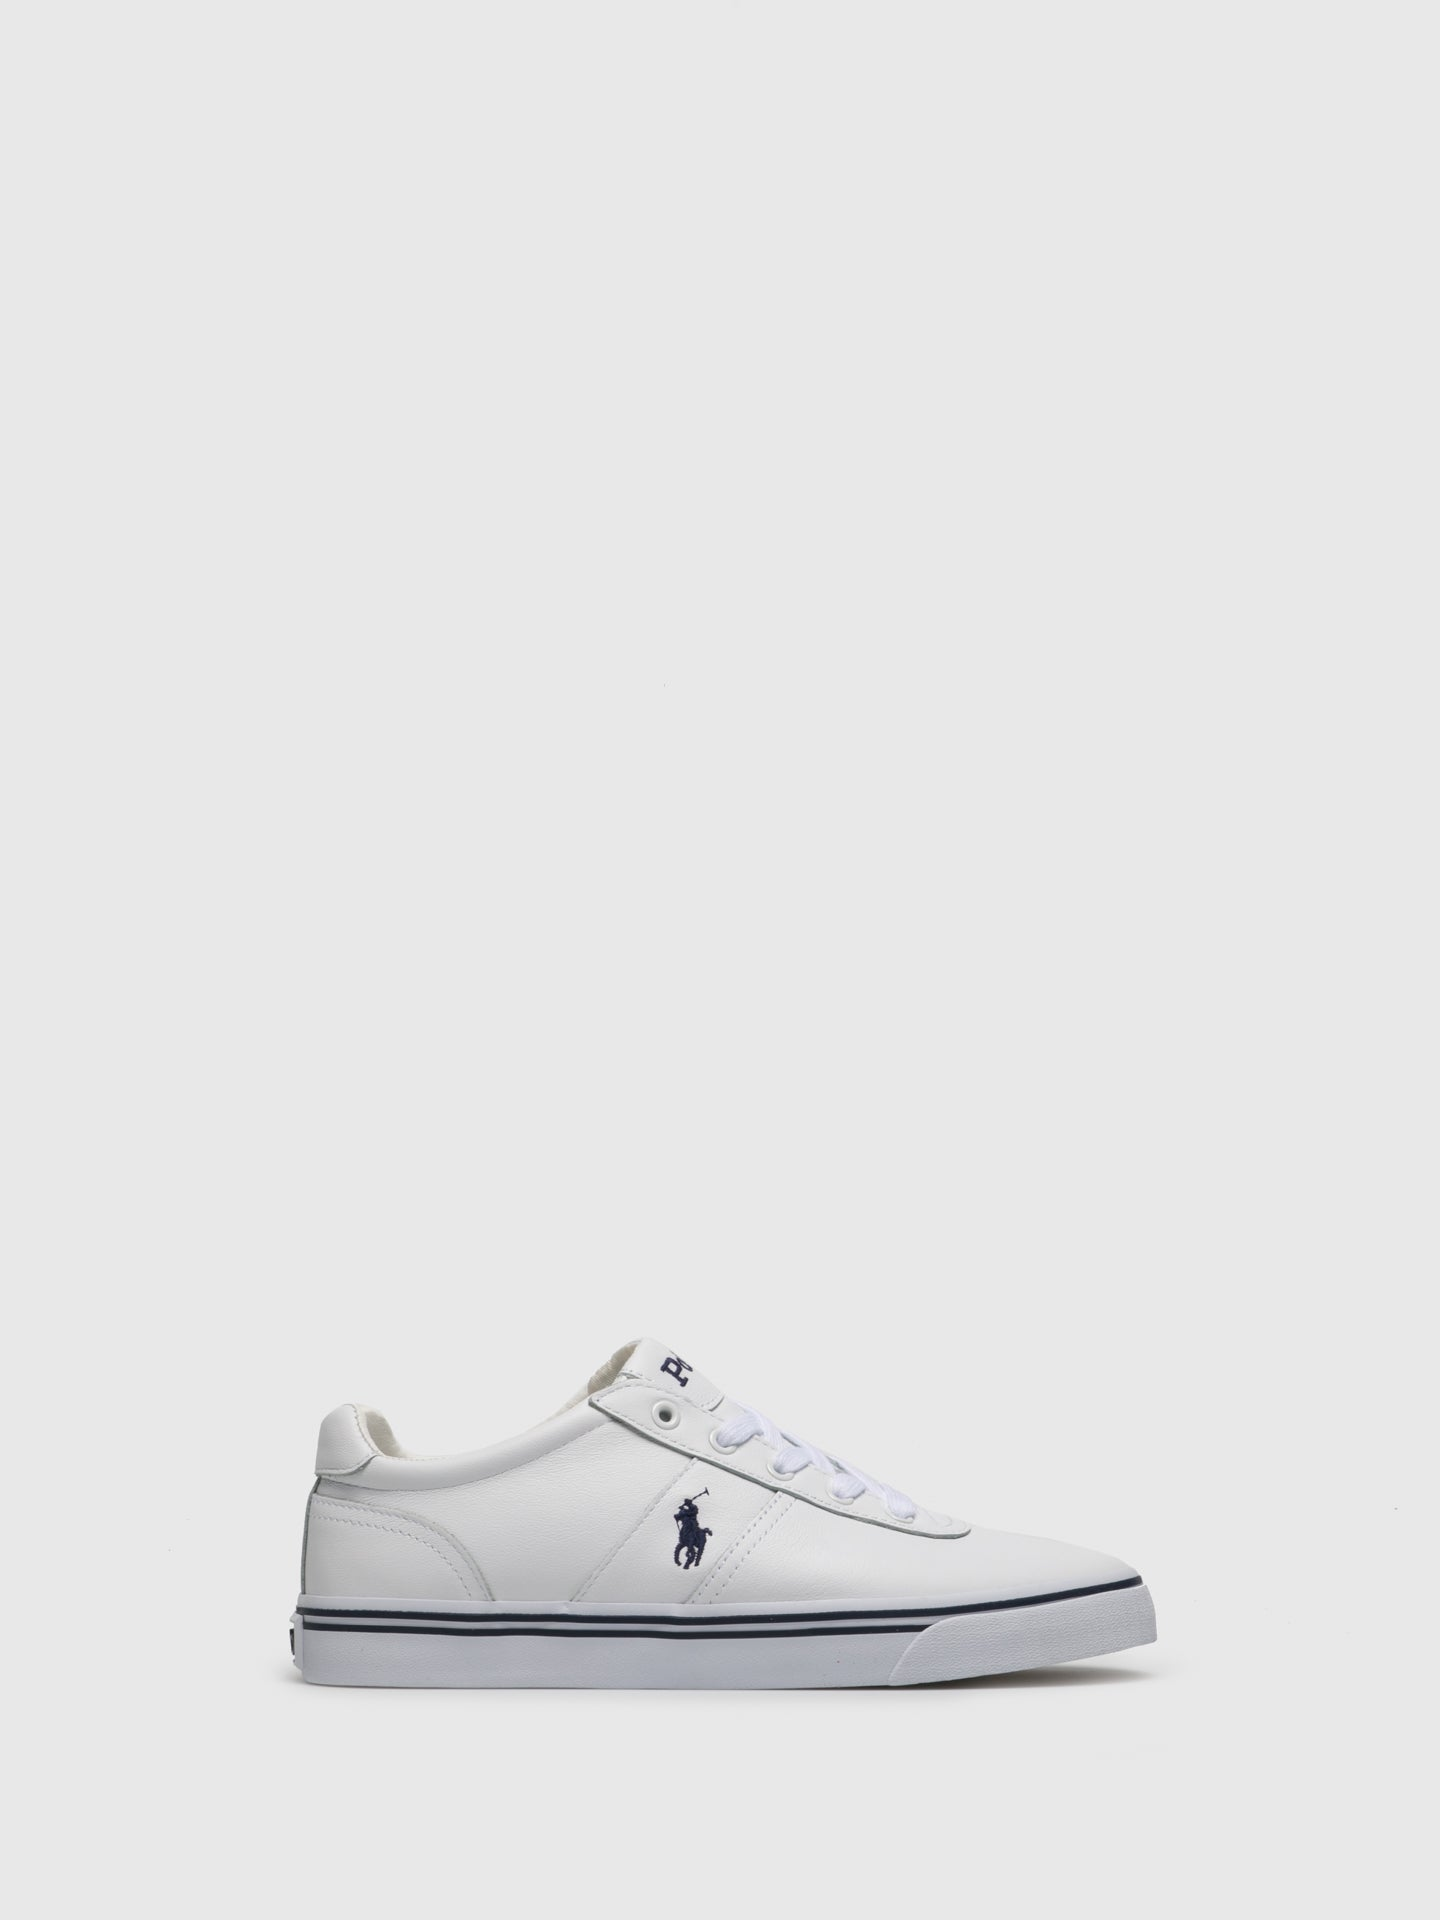 RALPH LAUREN White Leather Lace-up Trainers